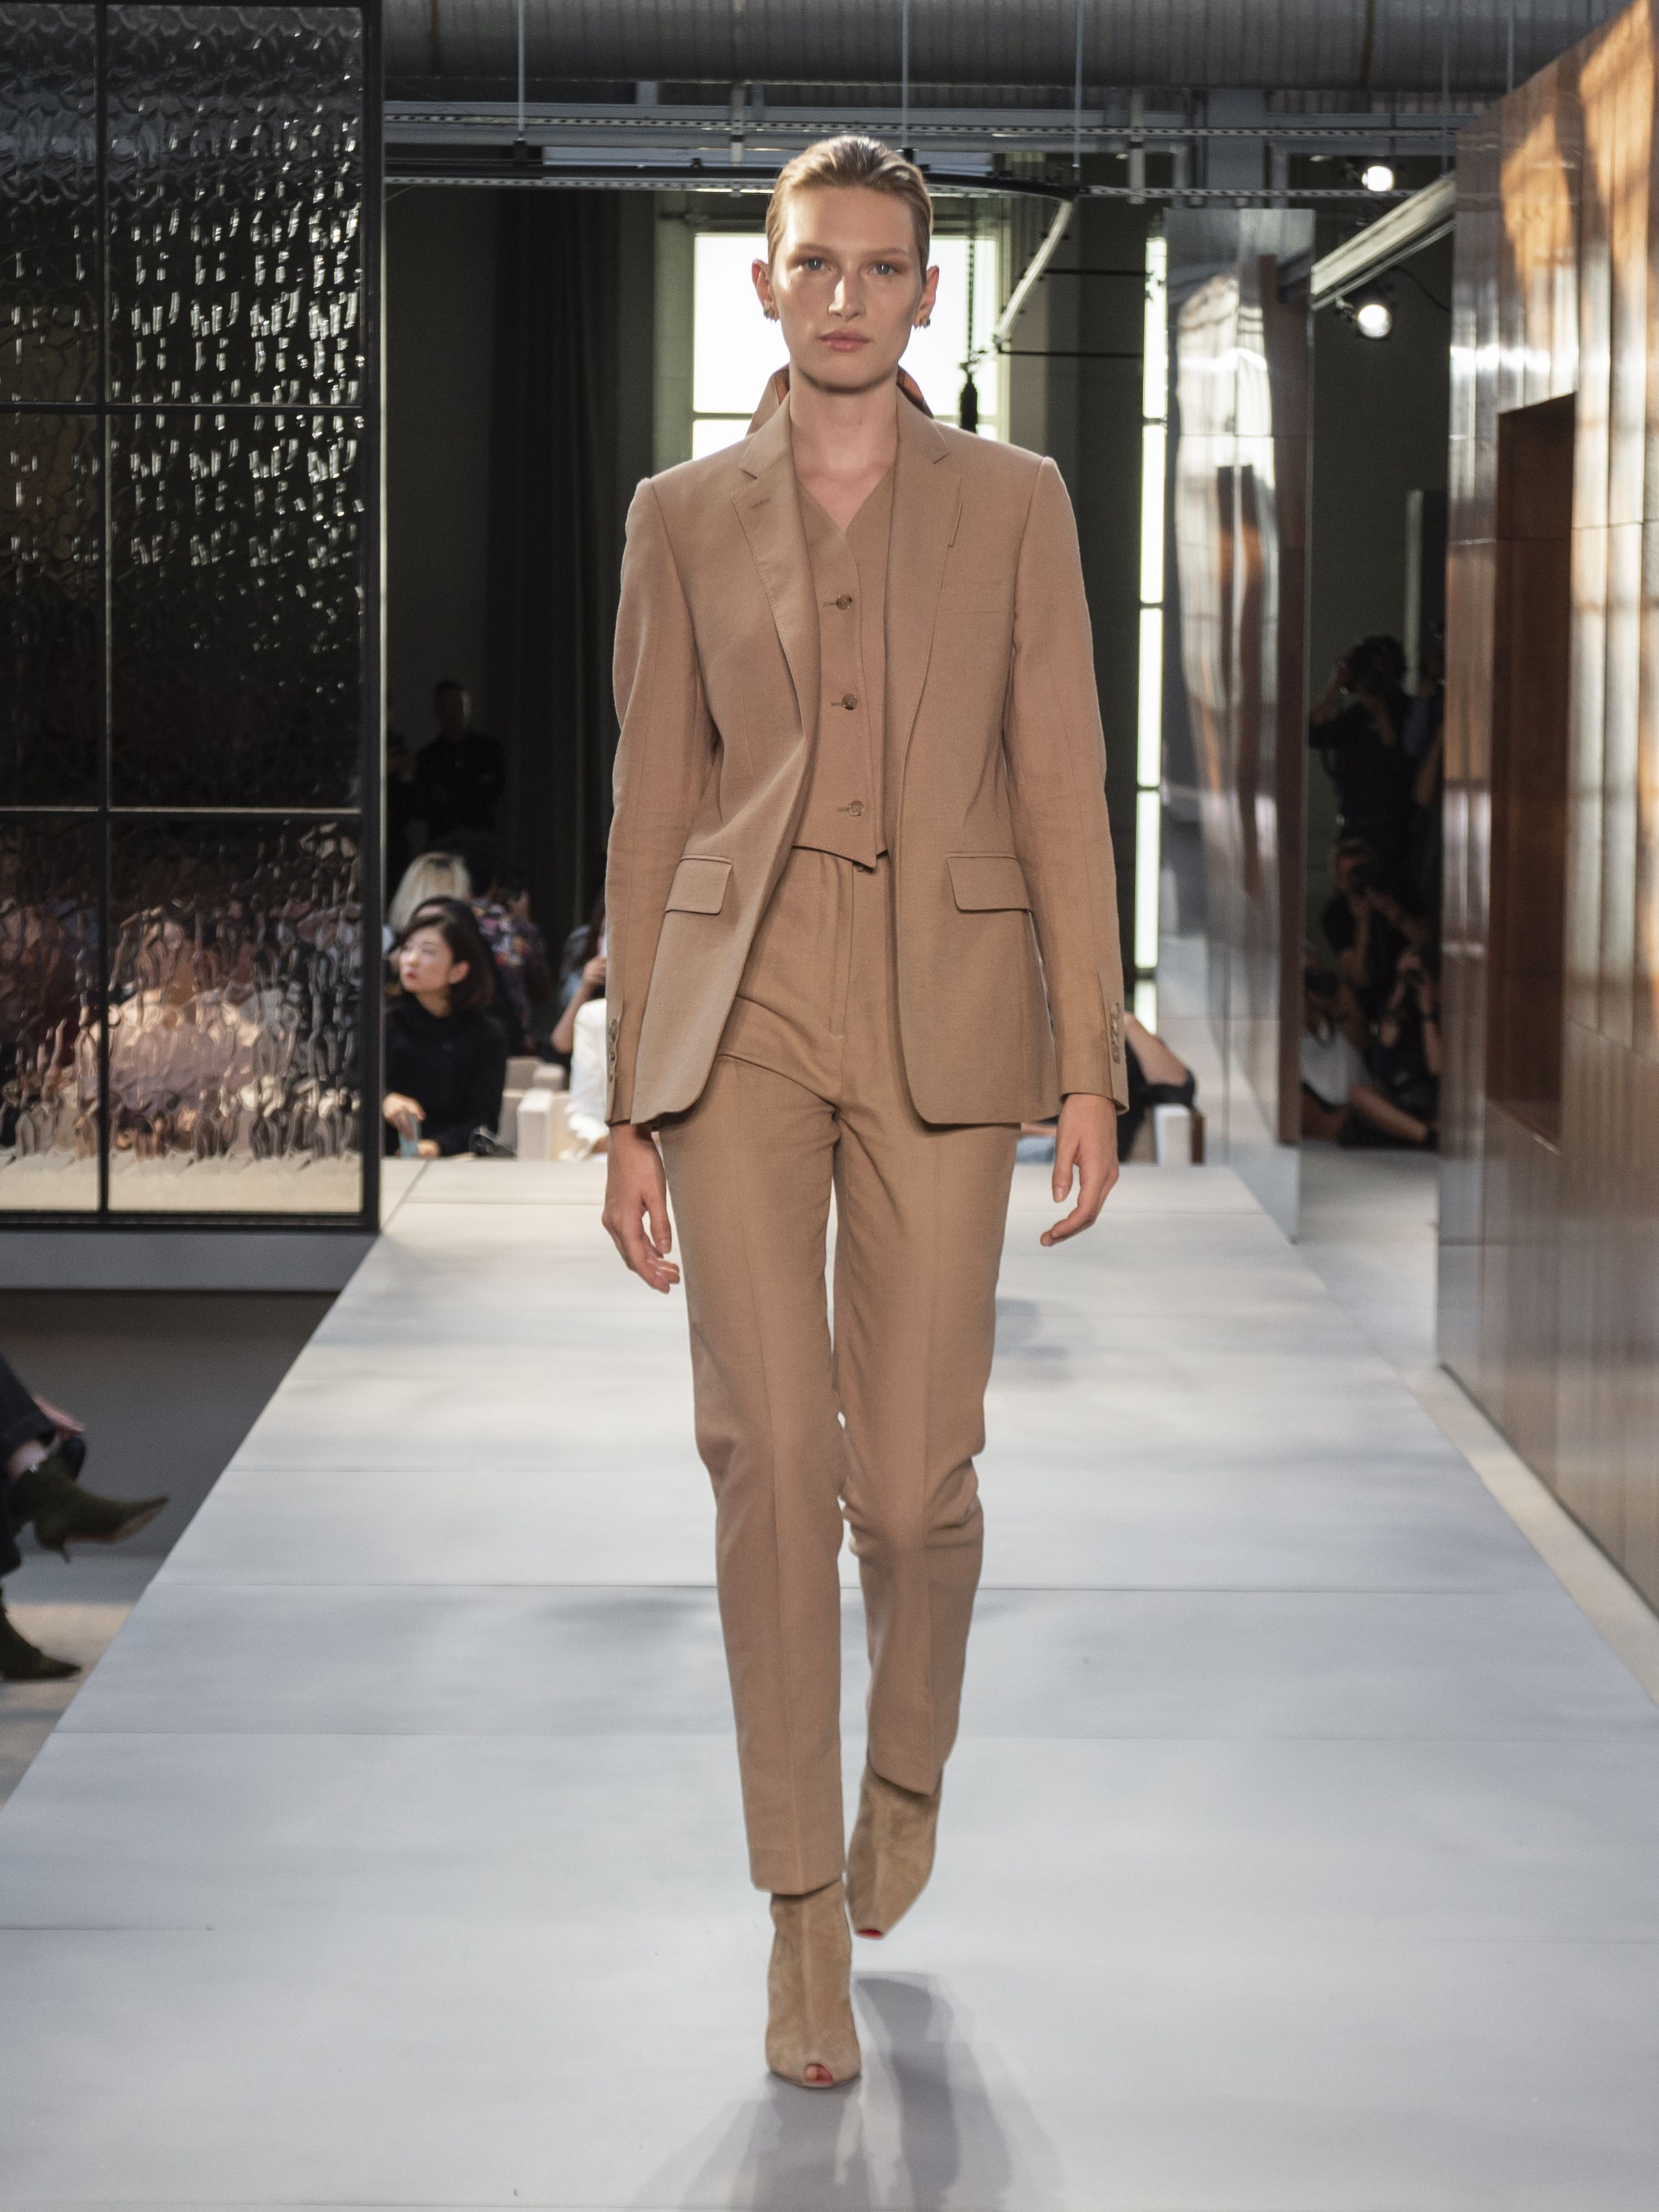 b761fd2cde22 A look from the  Burberry Spring Summer 2019 runway collection by   RiccardoTisci